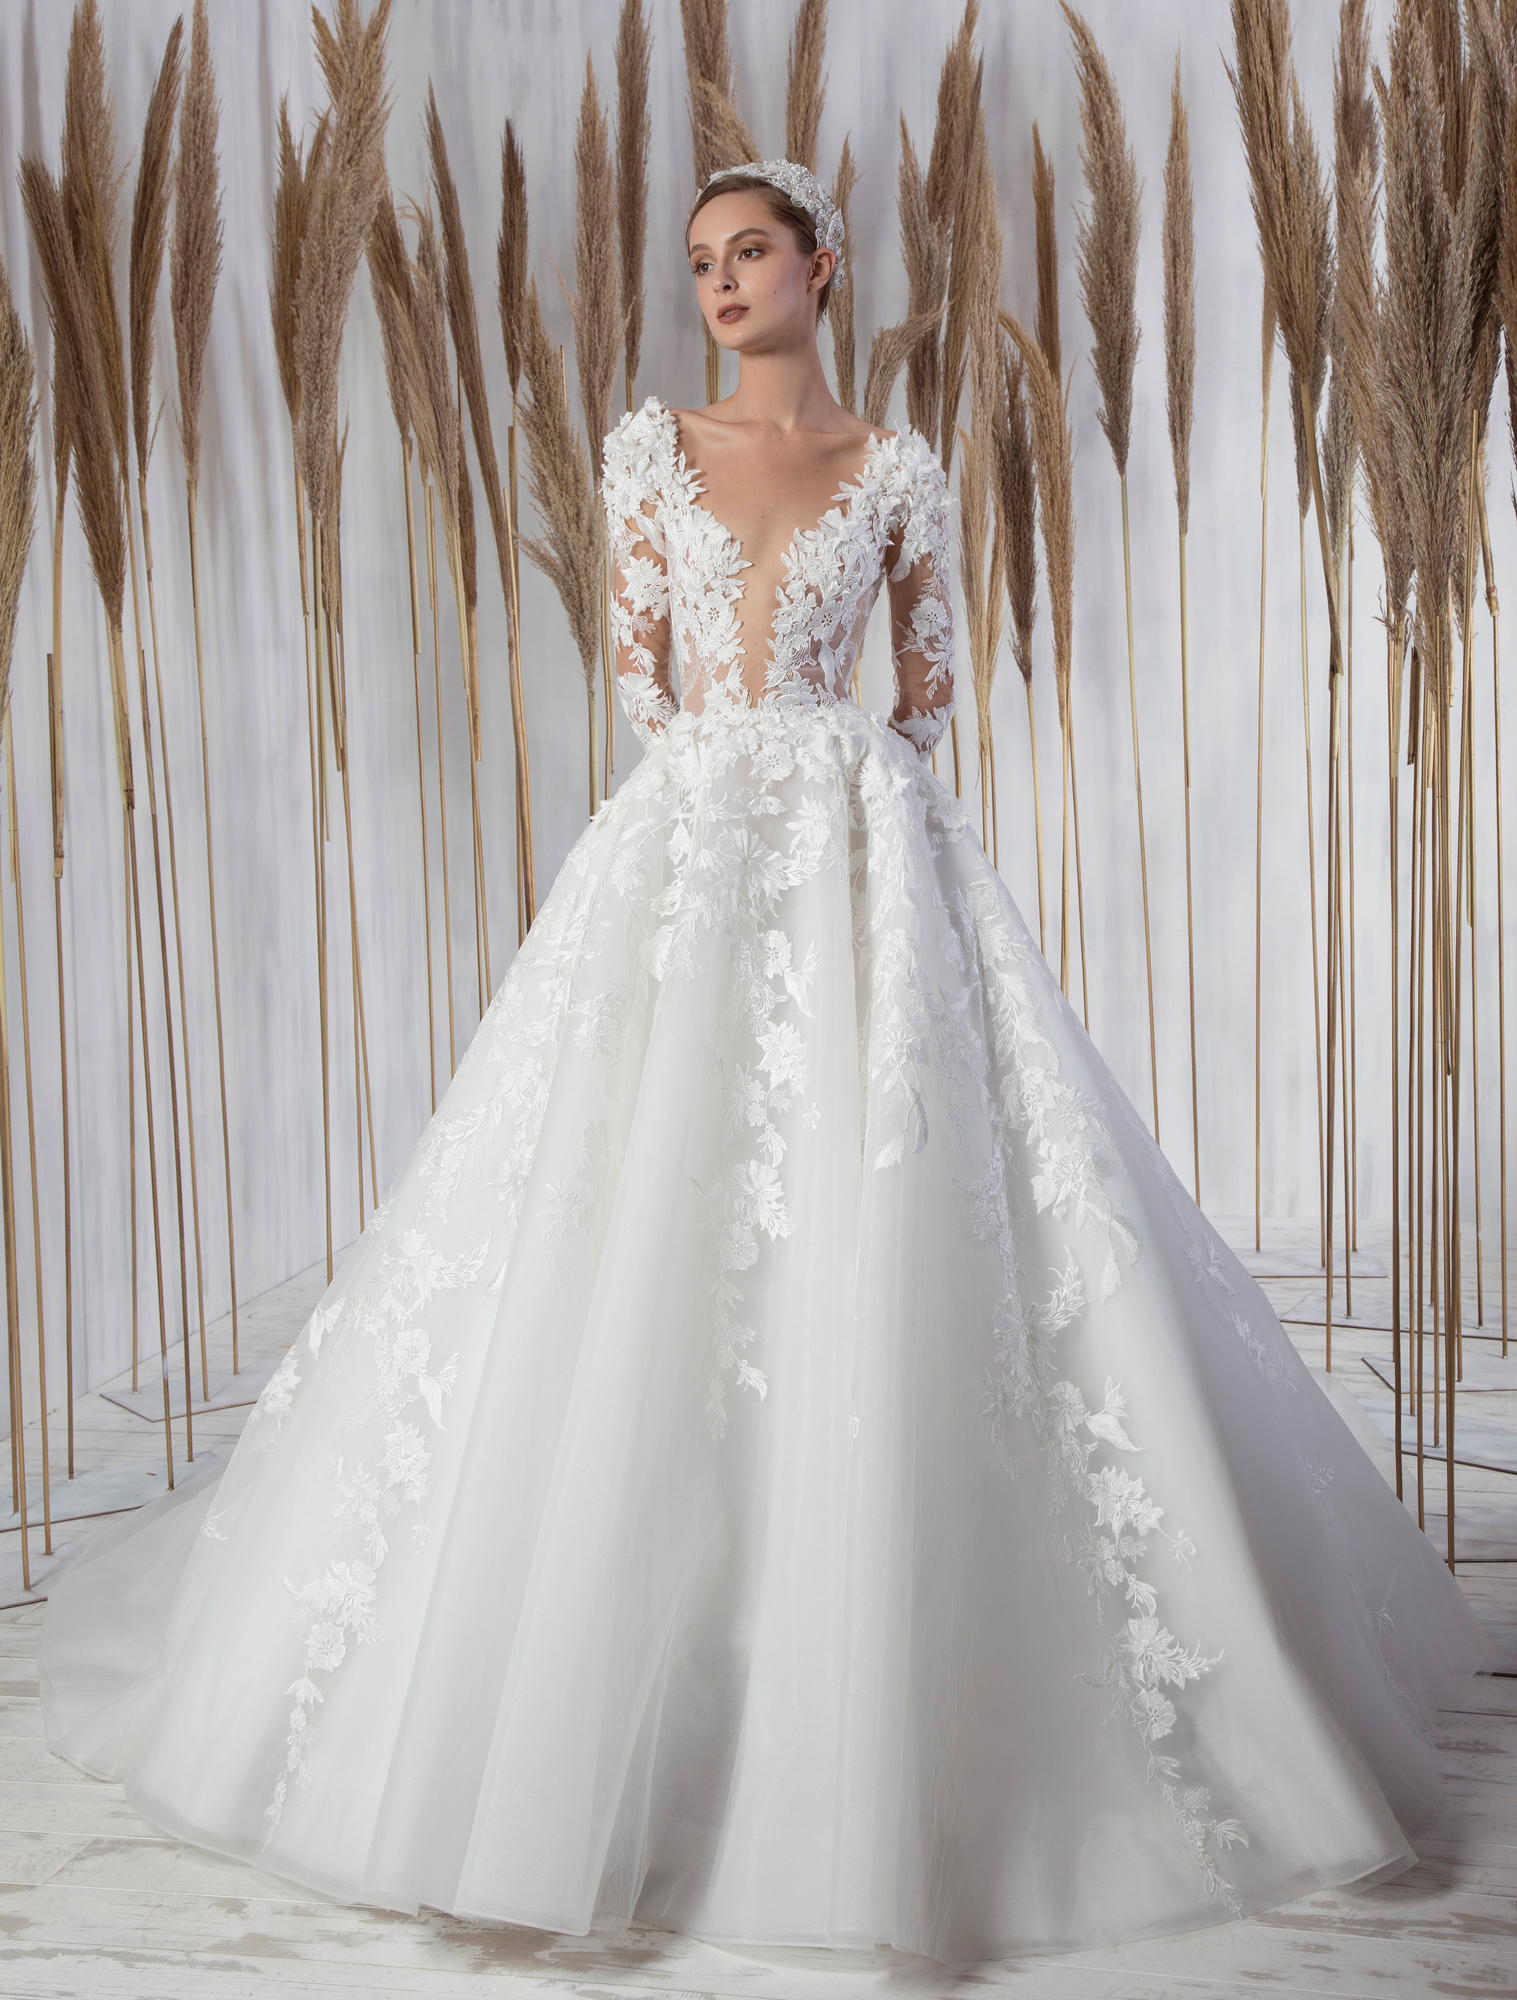 Bridal Gown Winslet by Tony Ward from the La Mariee Collection